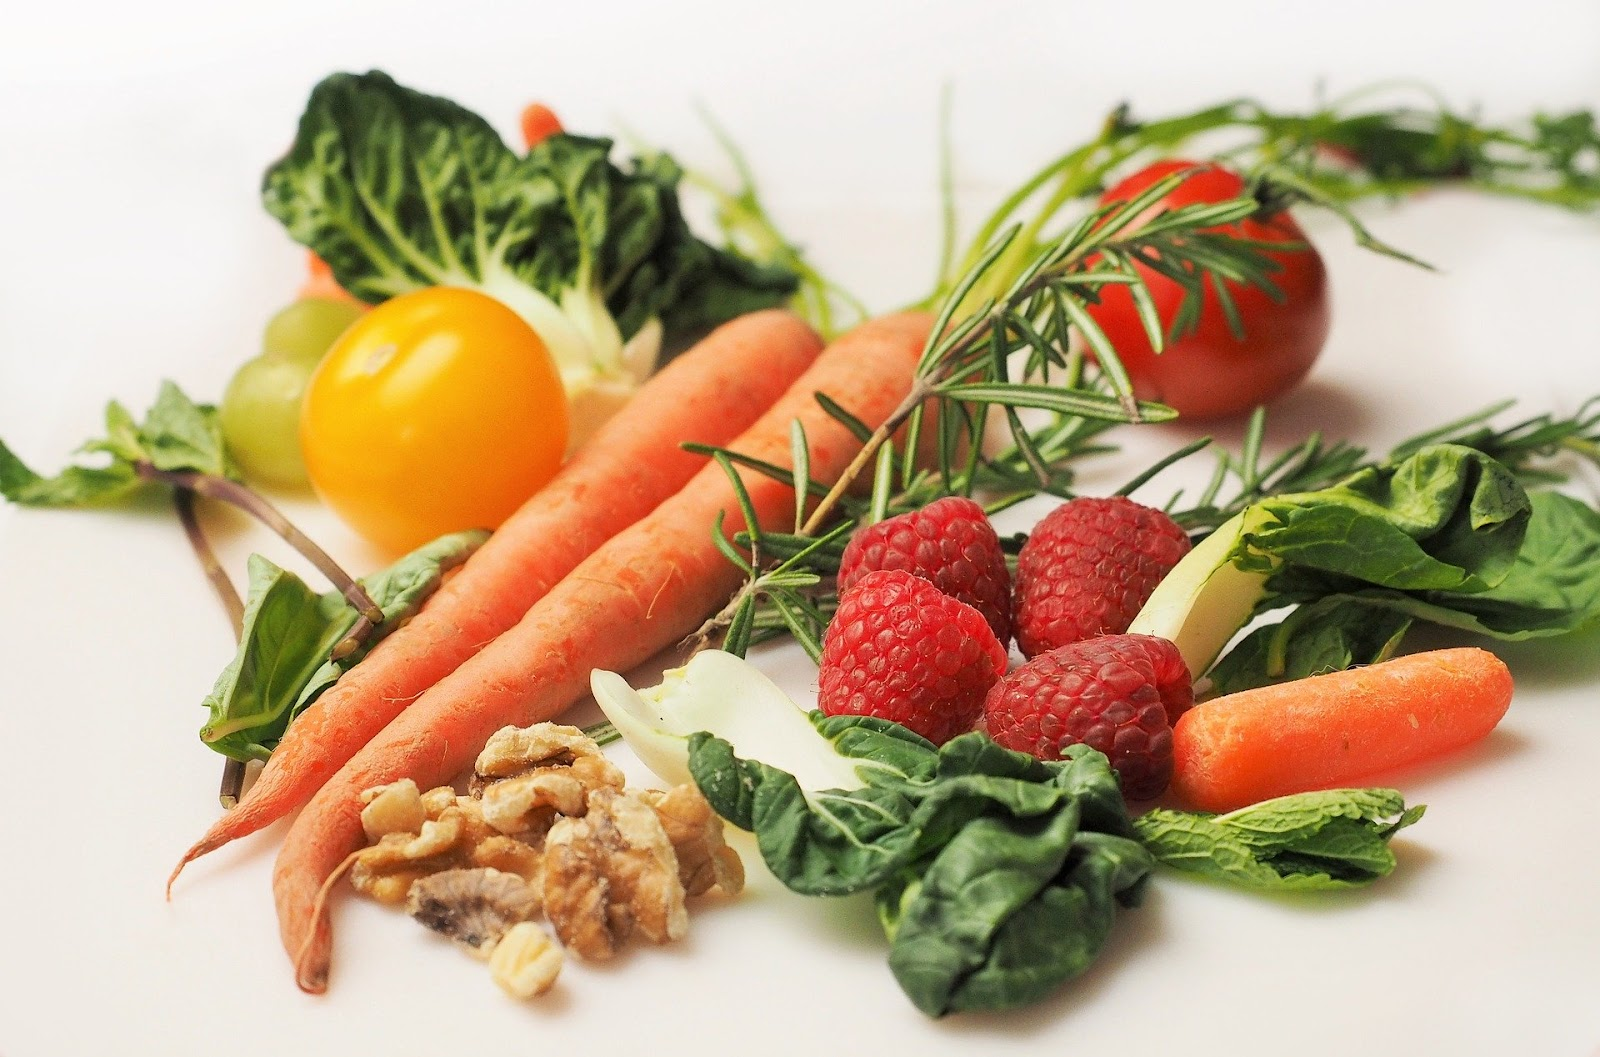 Fruit and veg keep your mind and body healthy while working from home